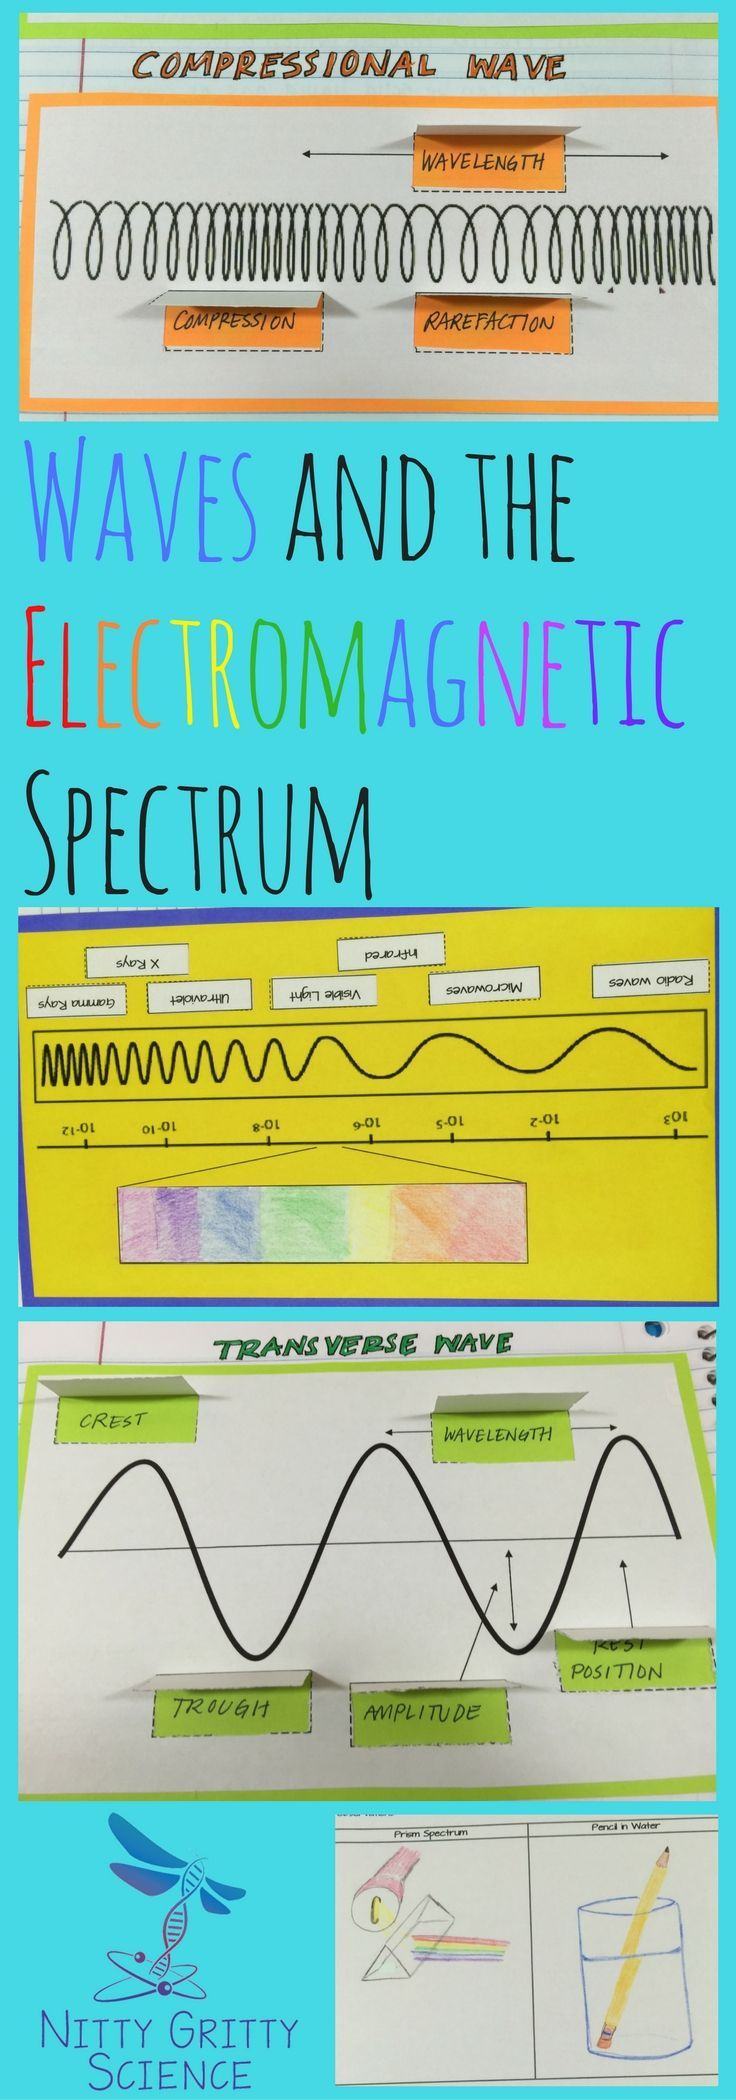 Waves And The Electromagnetic Spectrum Physical Science Interactive Notebook Physical Science Science Lessons Interactive Science Notebook